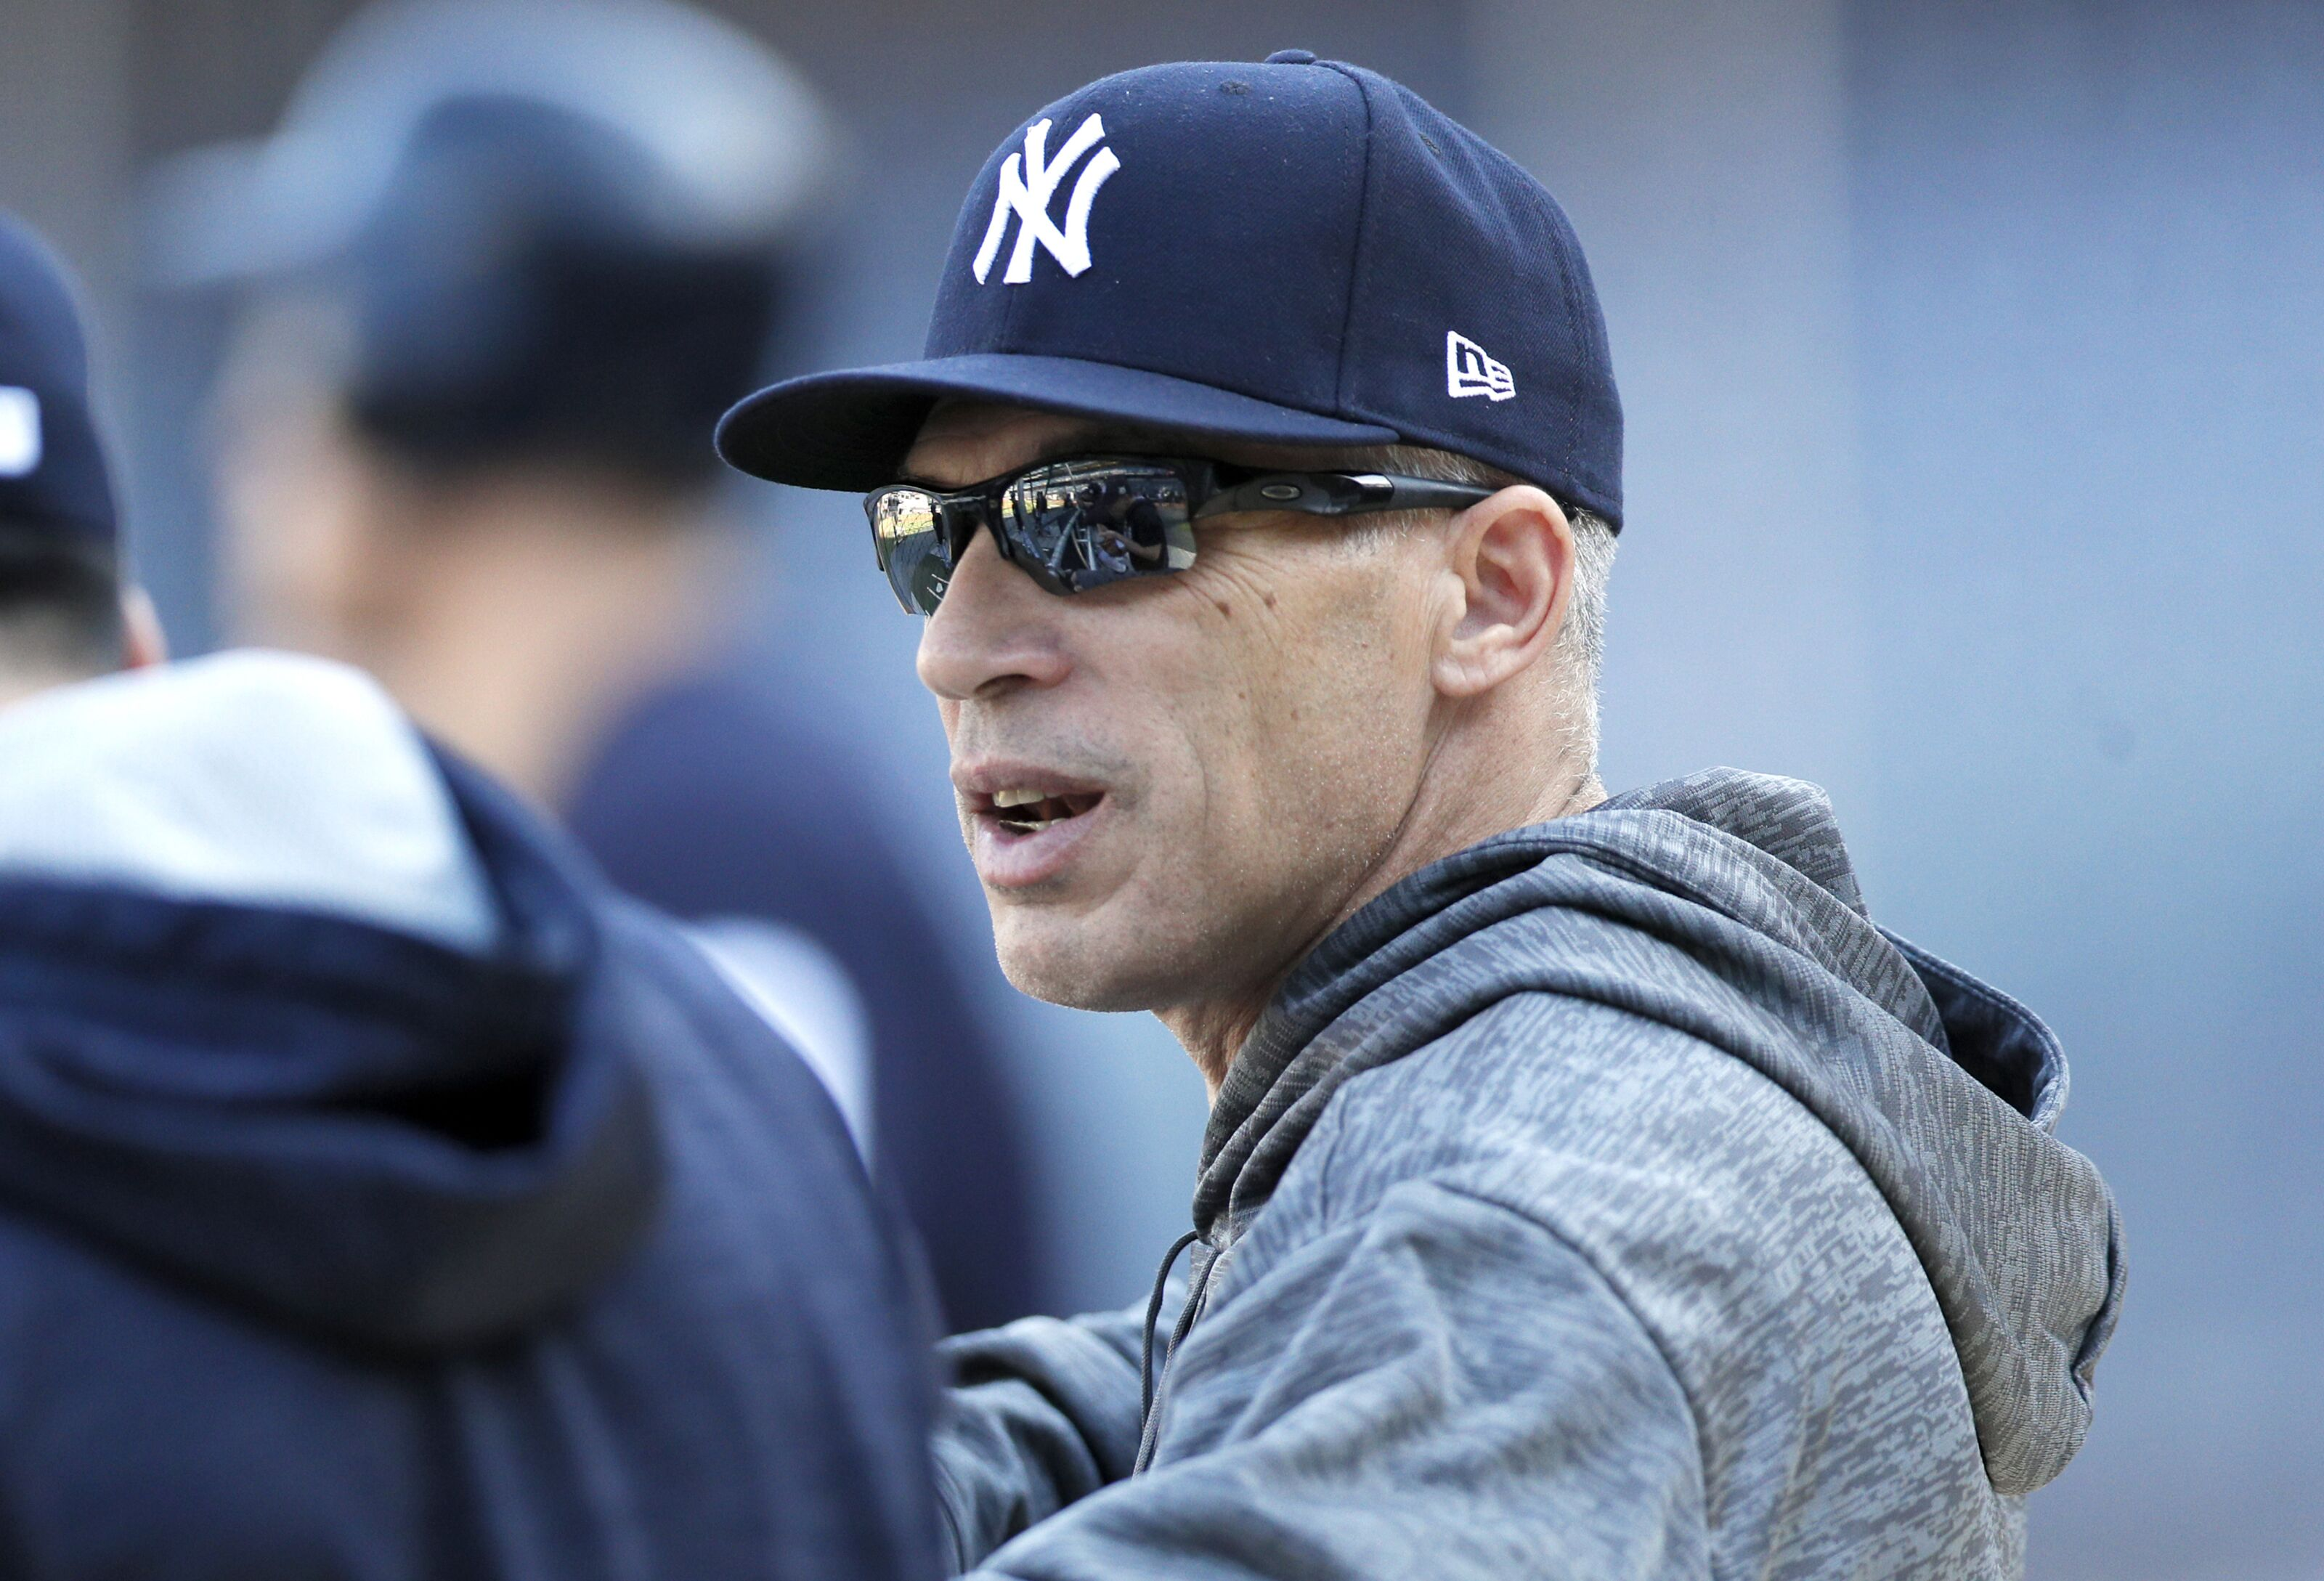 New York Mets: Why Joe Girardi is the perfect managerial fit